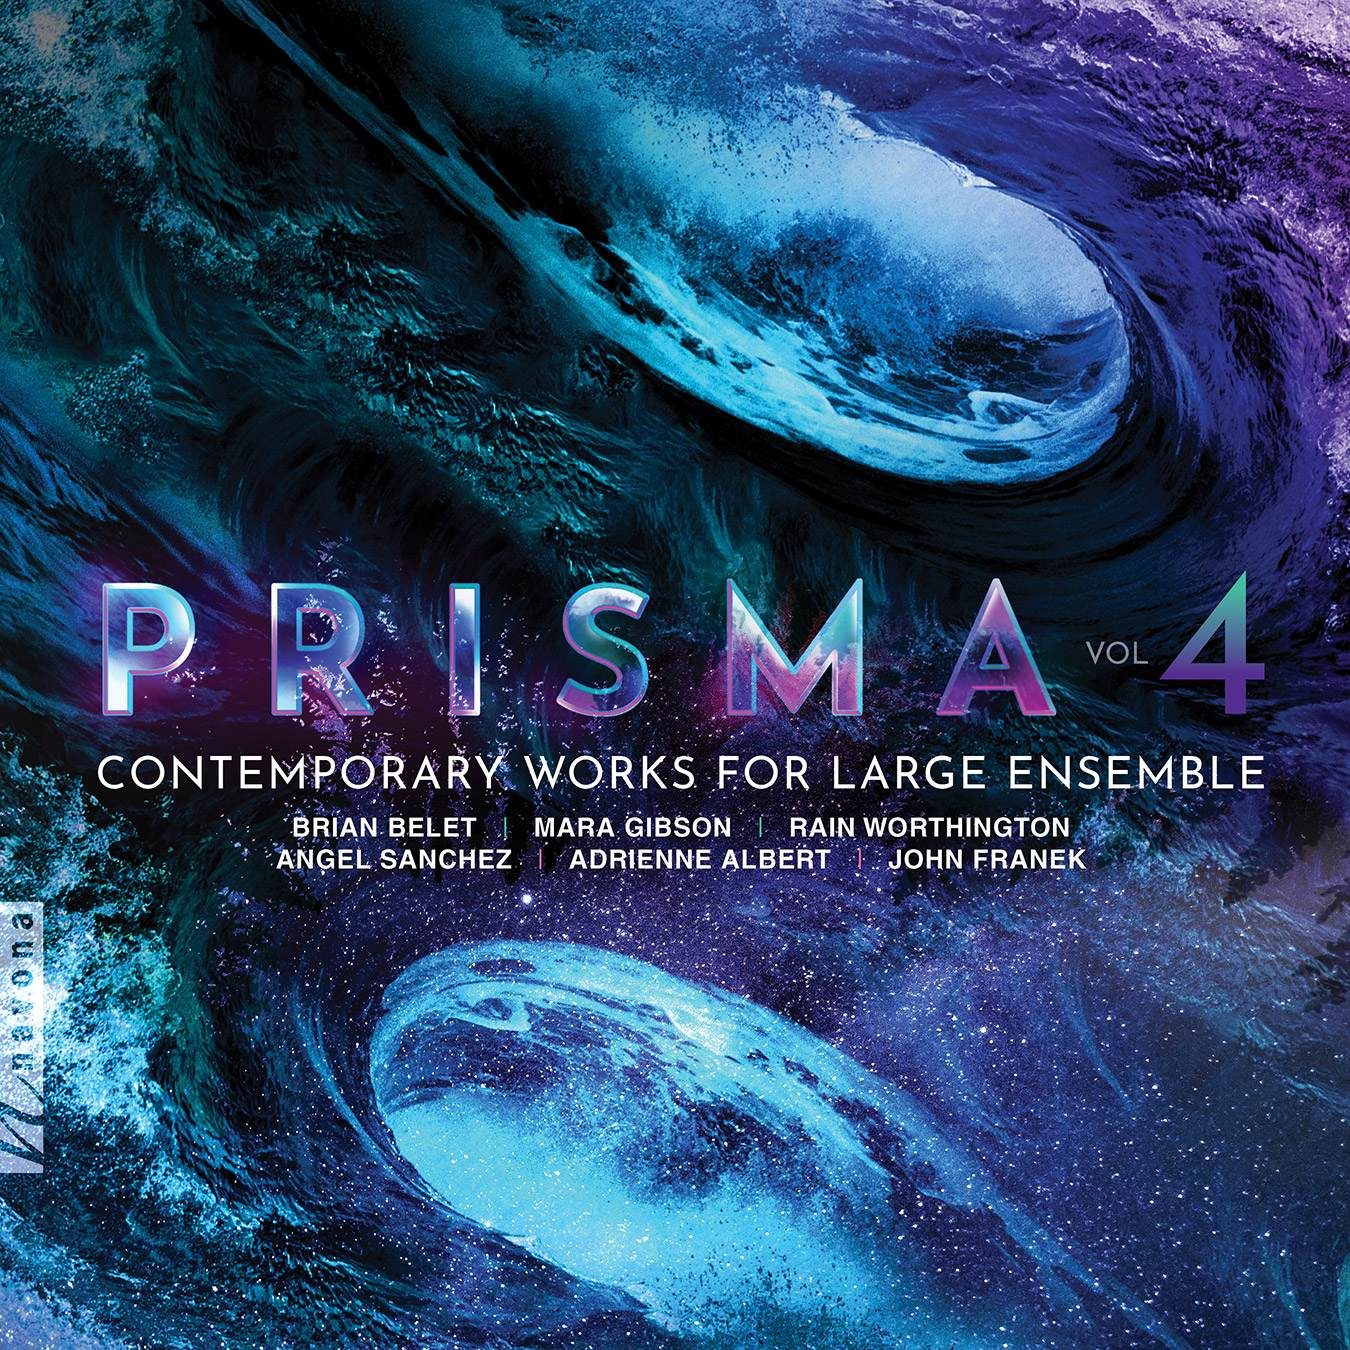 Prisma Vol. 4 - Various Artists - Album Cover